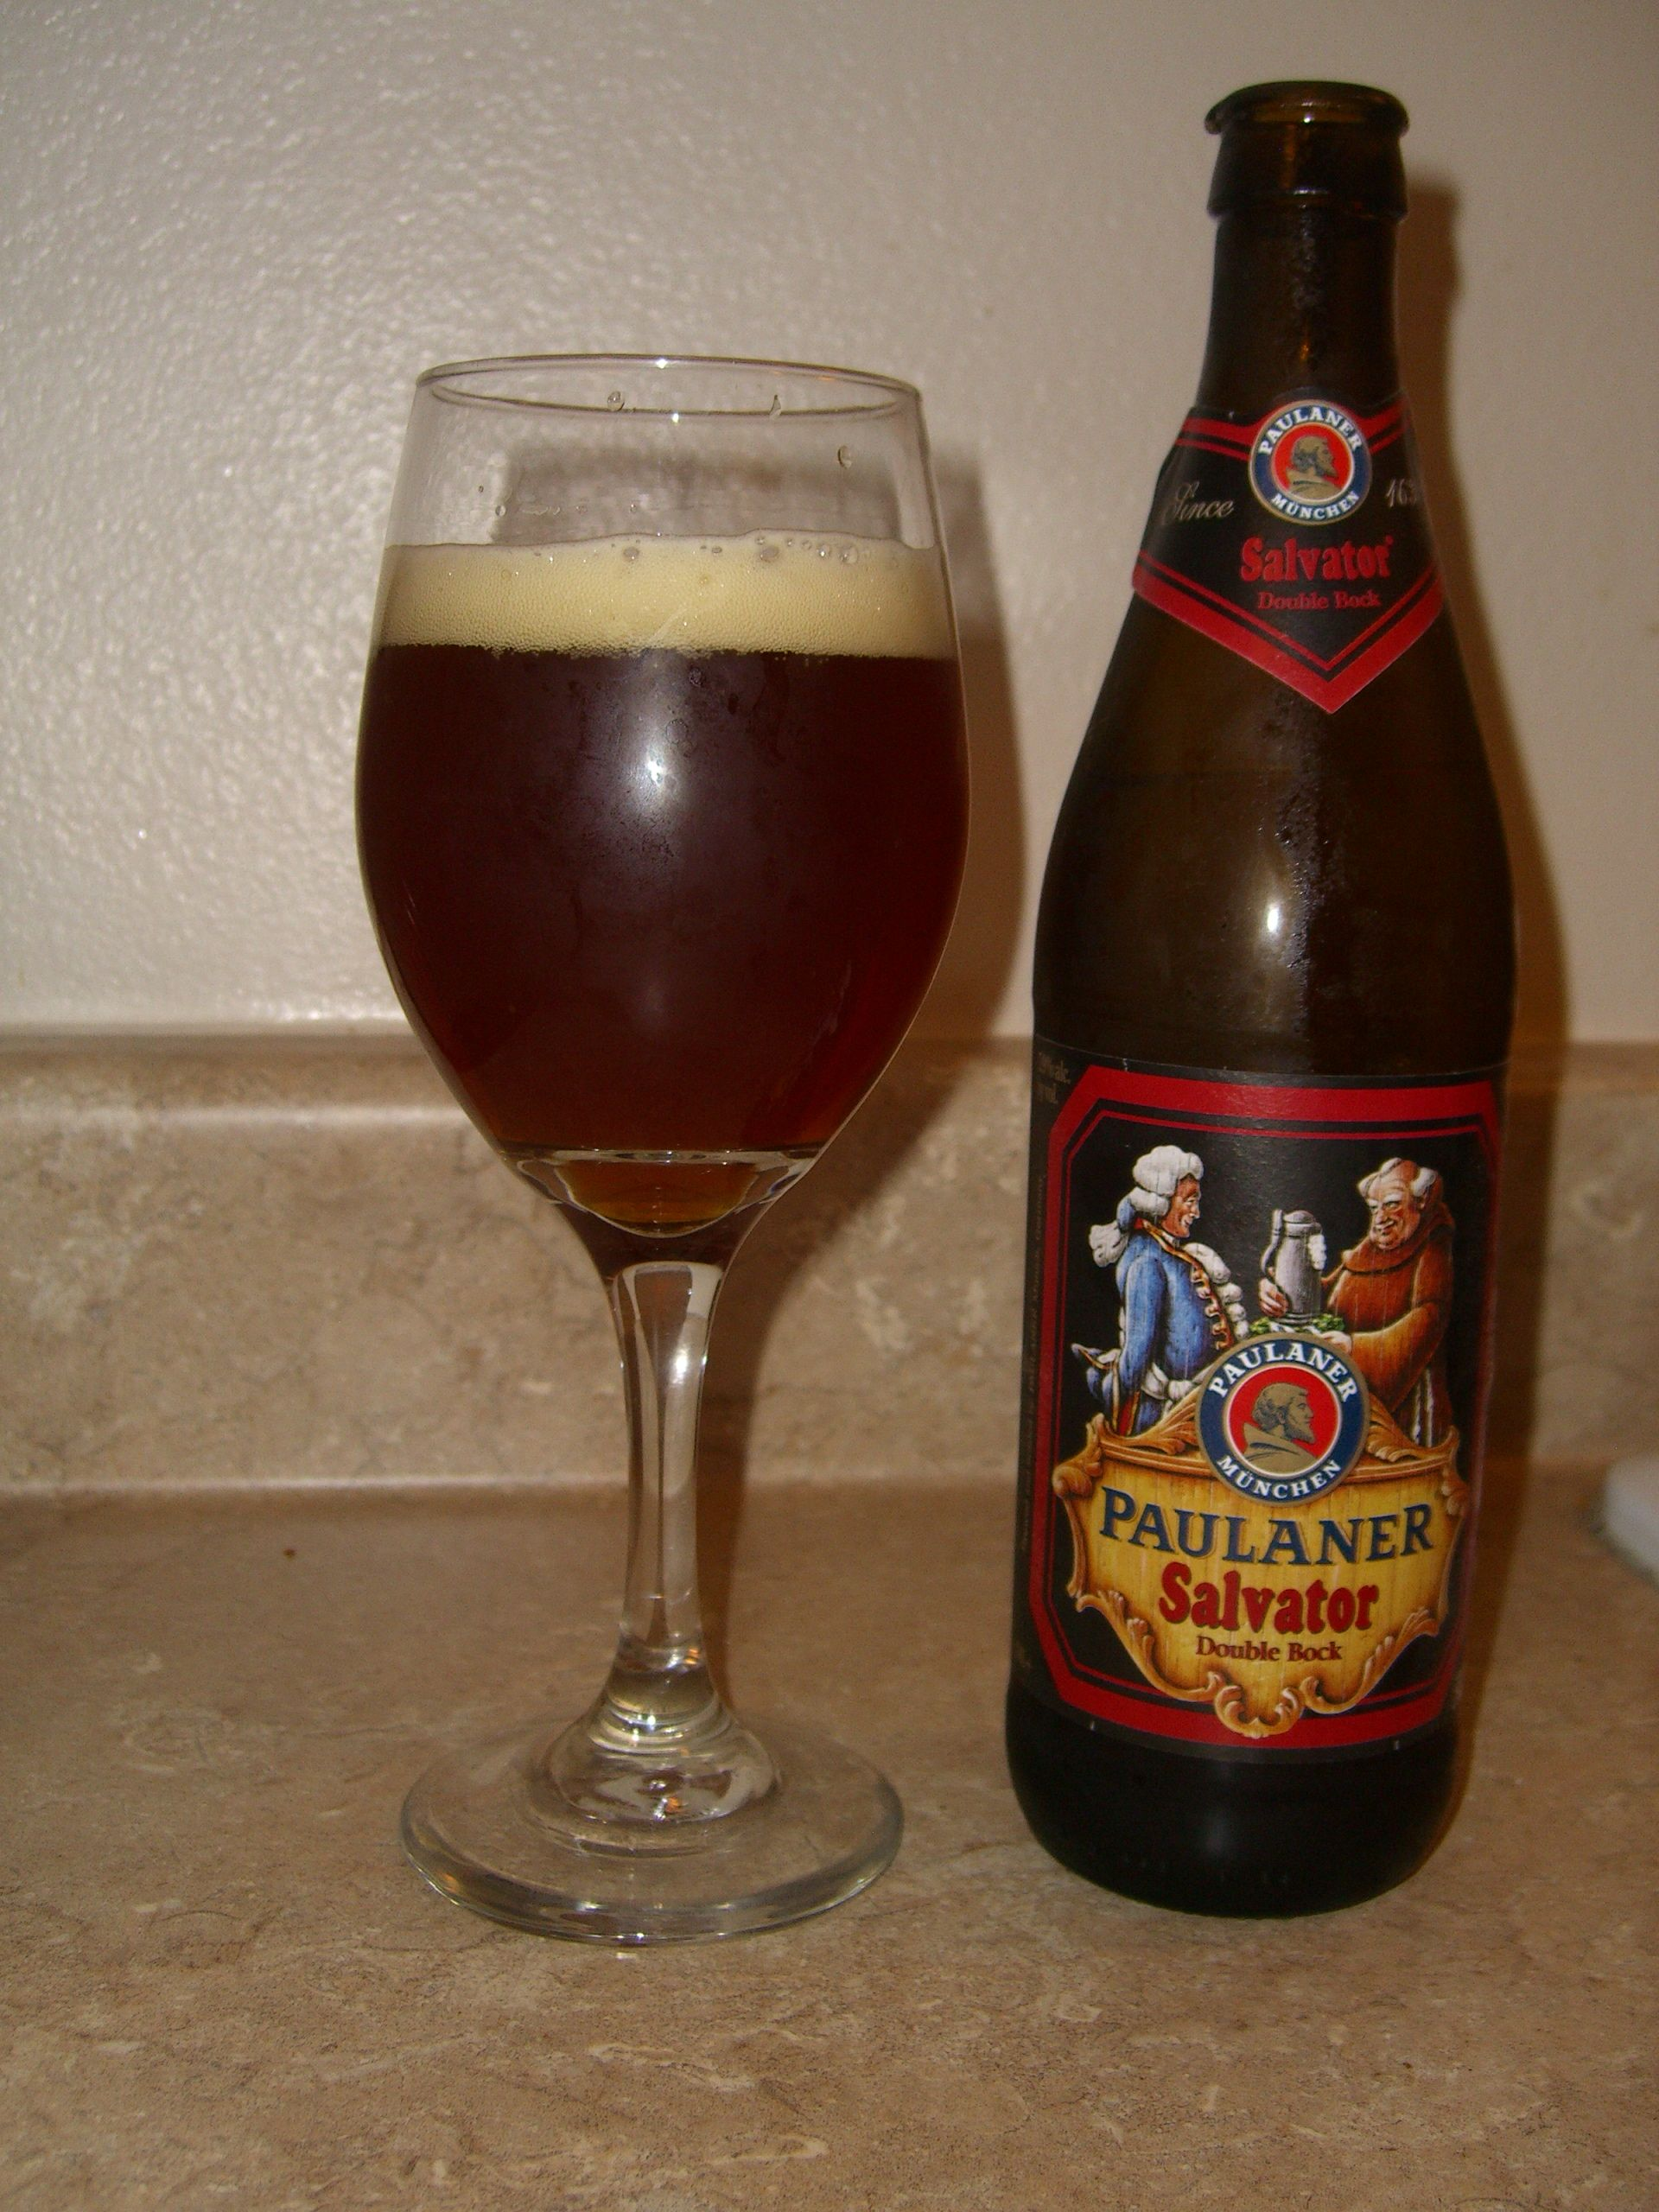 20 bottles of Paulaner Salvator 0.5l - strong (double-) bock beer with 7.9%  alc./vol. from Bavaria